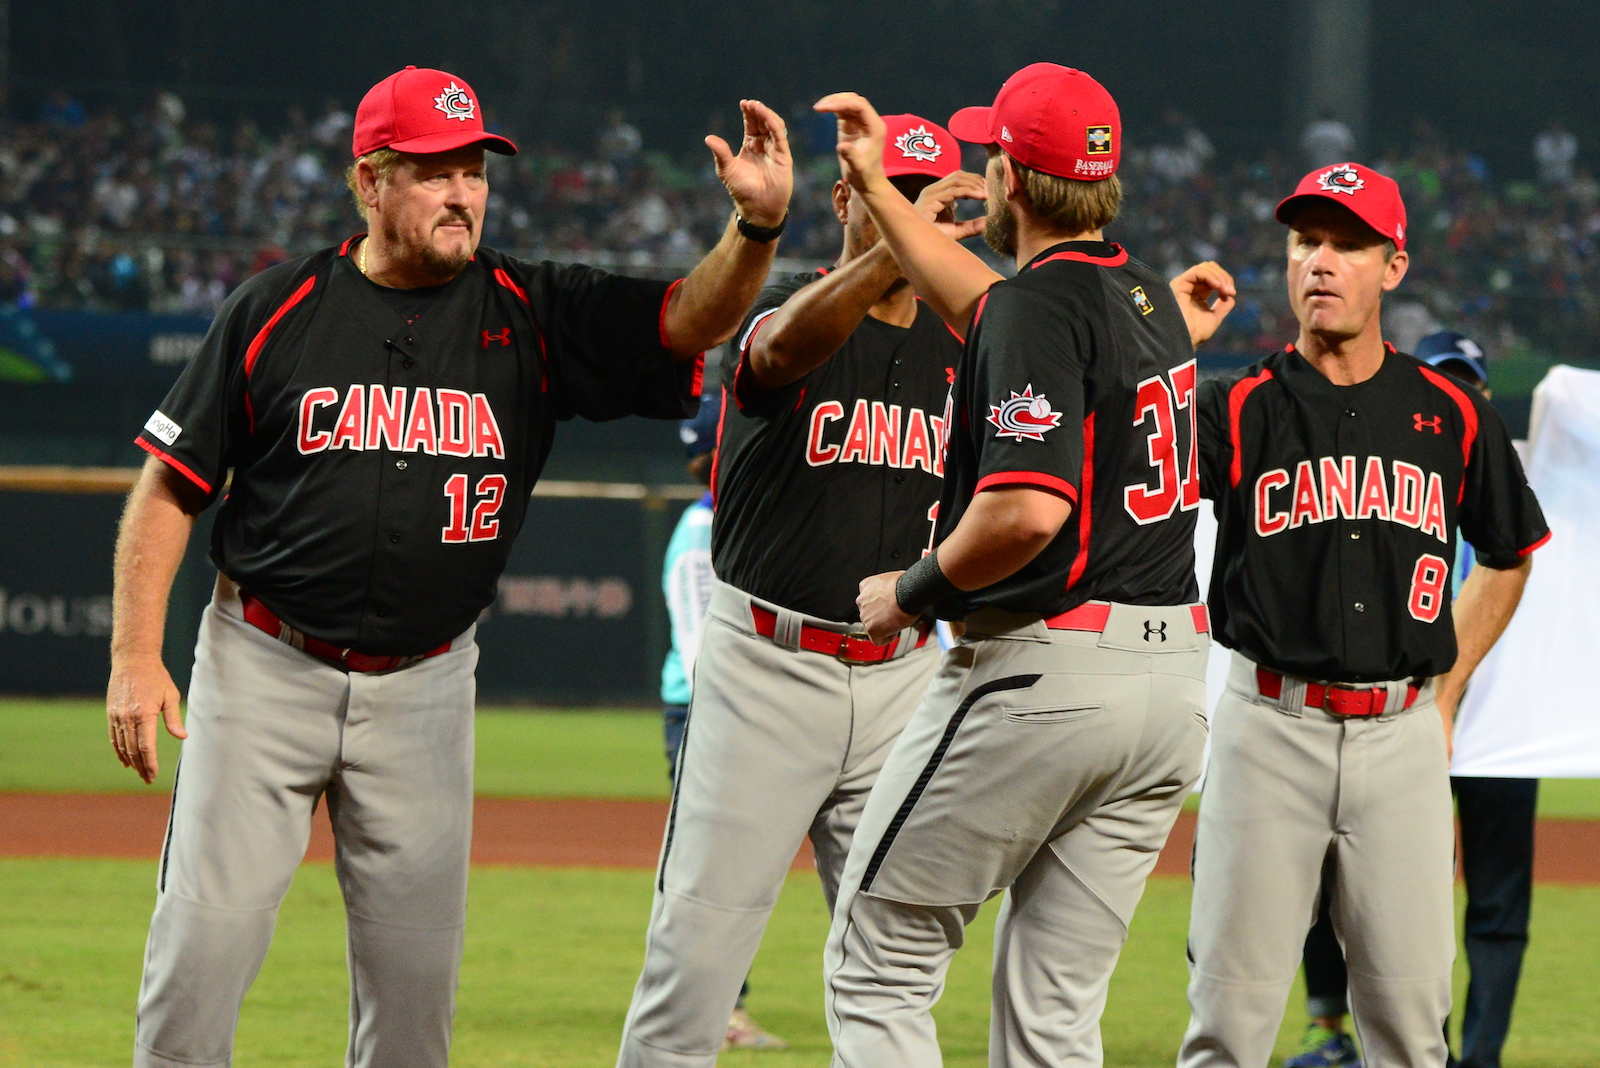 On Wednesday, Baseball Canada unveiled its roster for the Pan Am Qualifier that will take place in Sao Paulo, Brazil starting on January 29. Ernie Whitt (far left) will again manage the team. Photo Credit: Baseball Canada